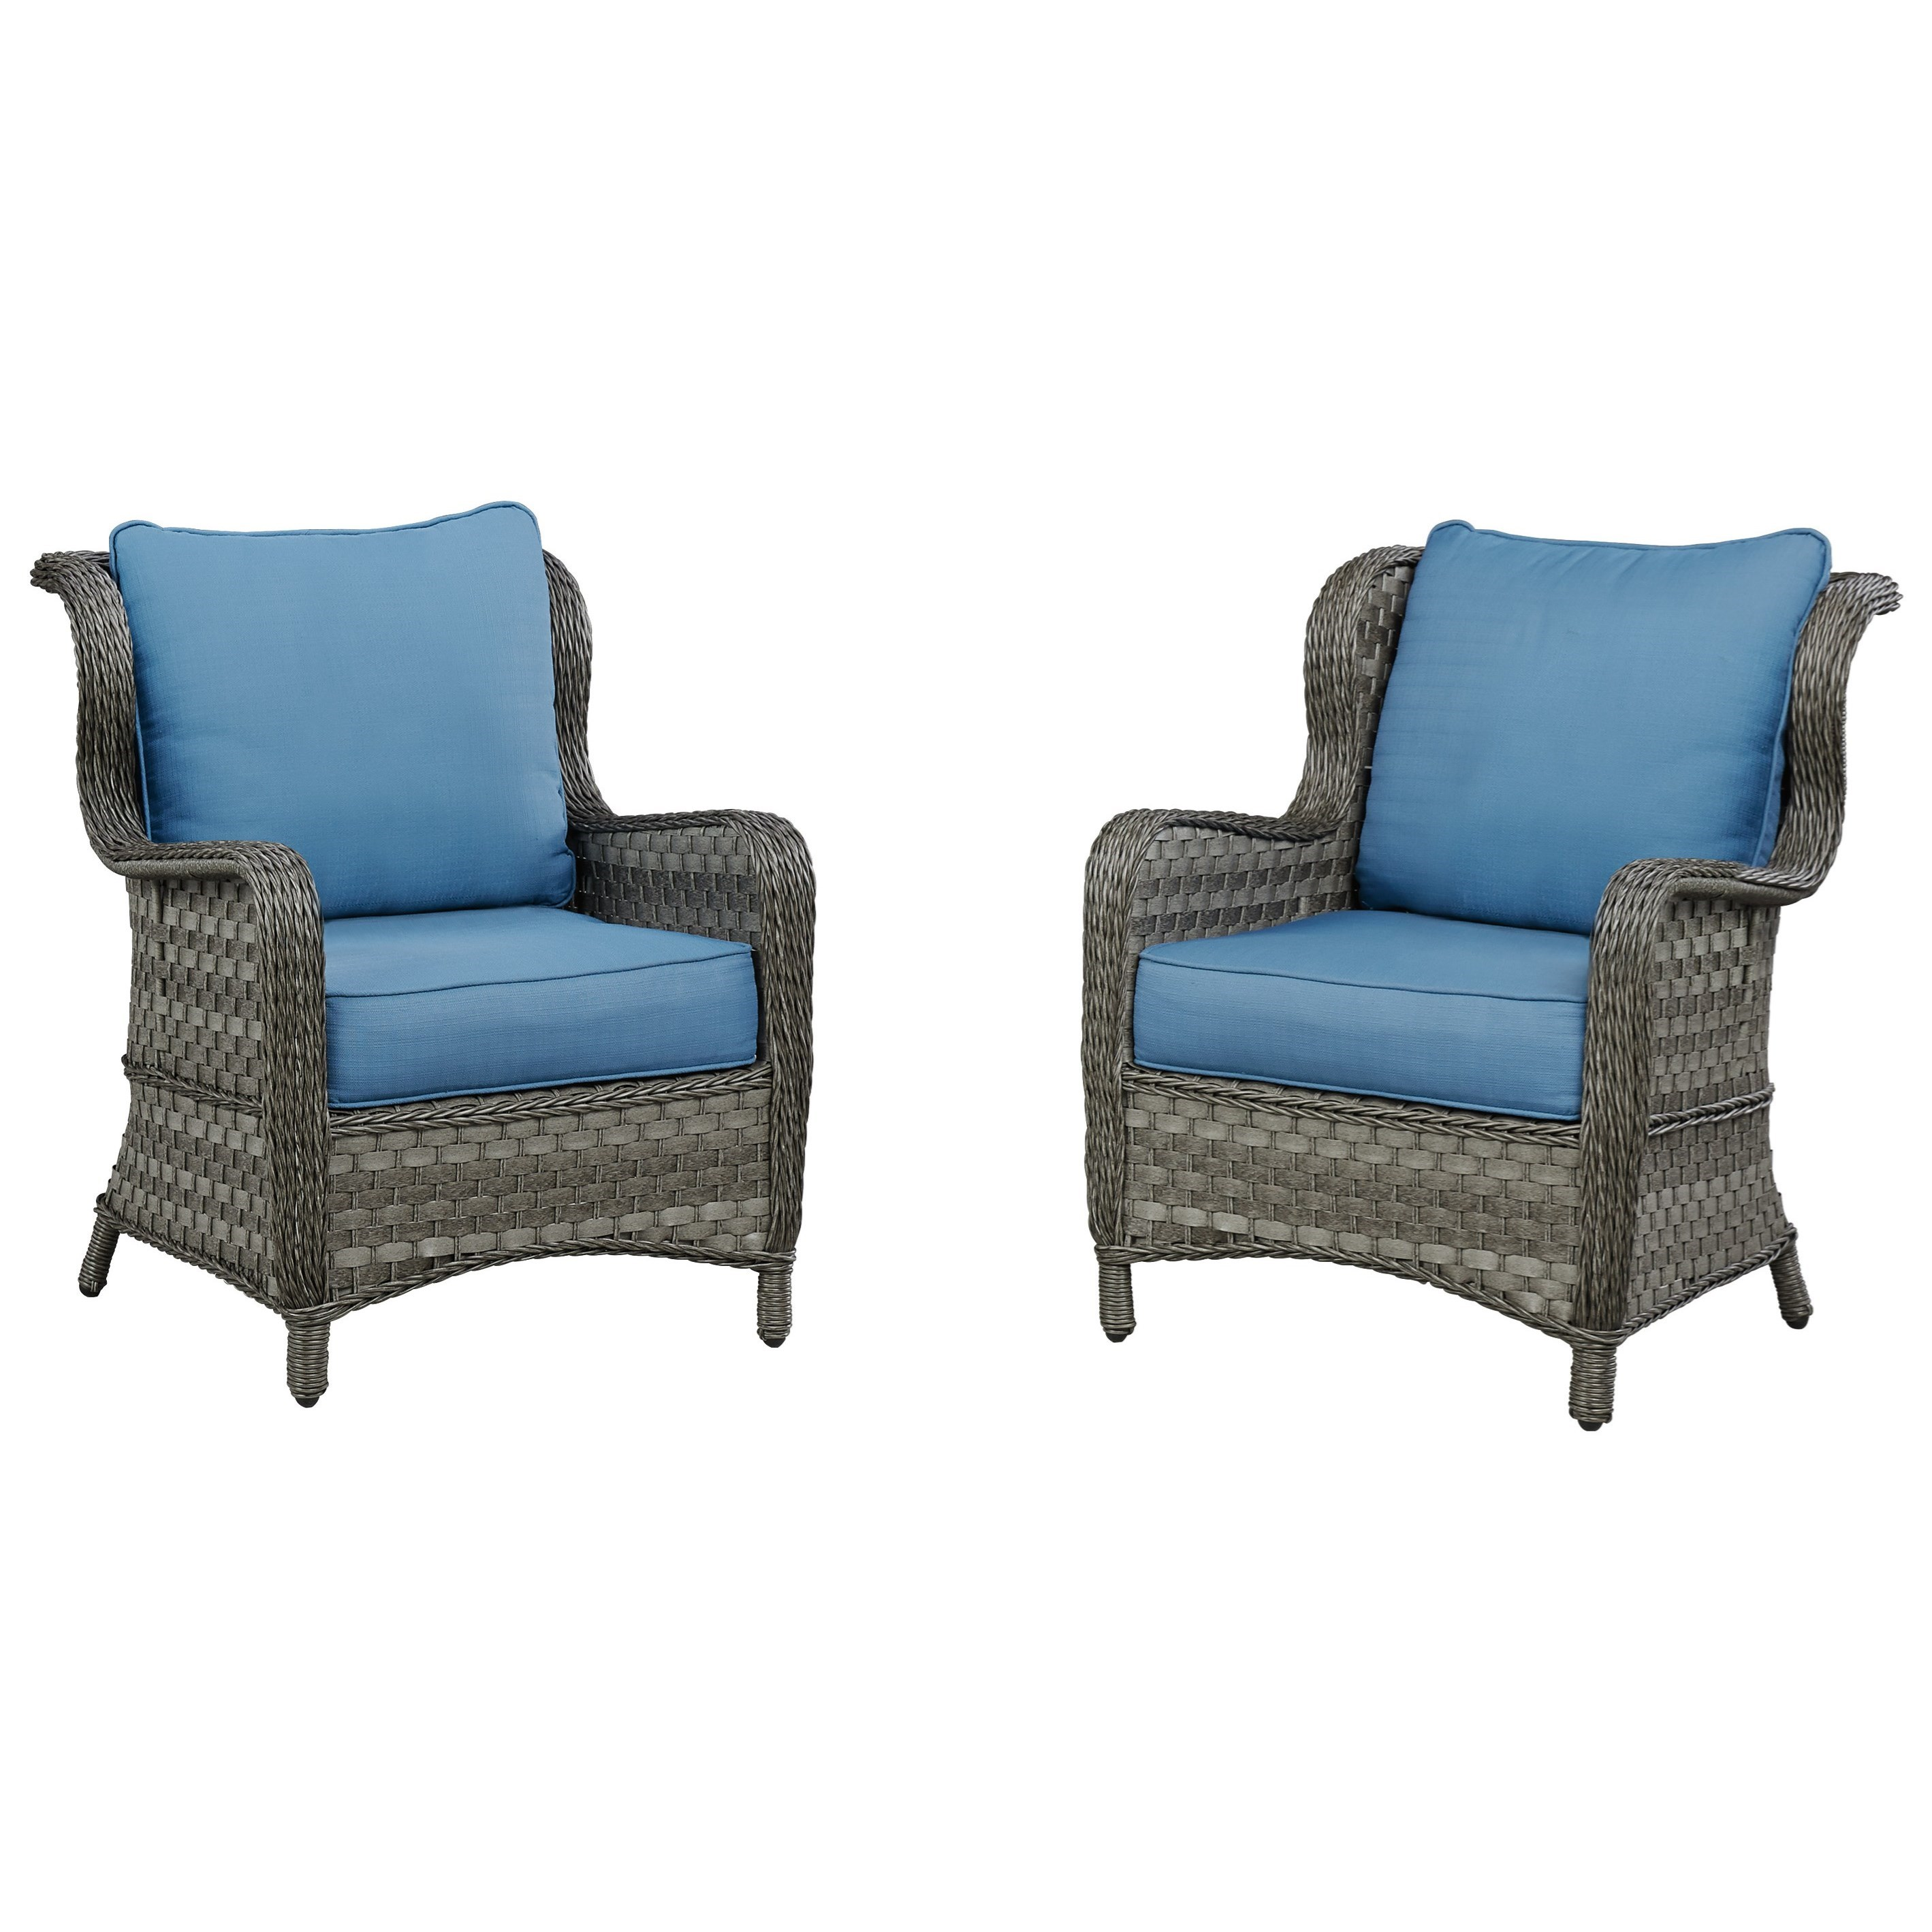 Ashley signature design abbots court p360 820 set of 2 for Outdoor seating furniture